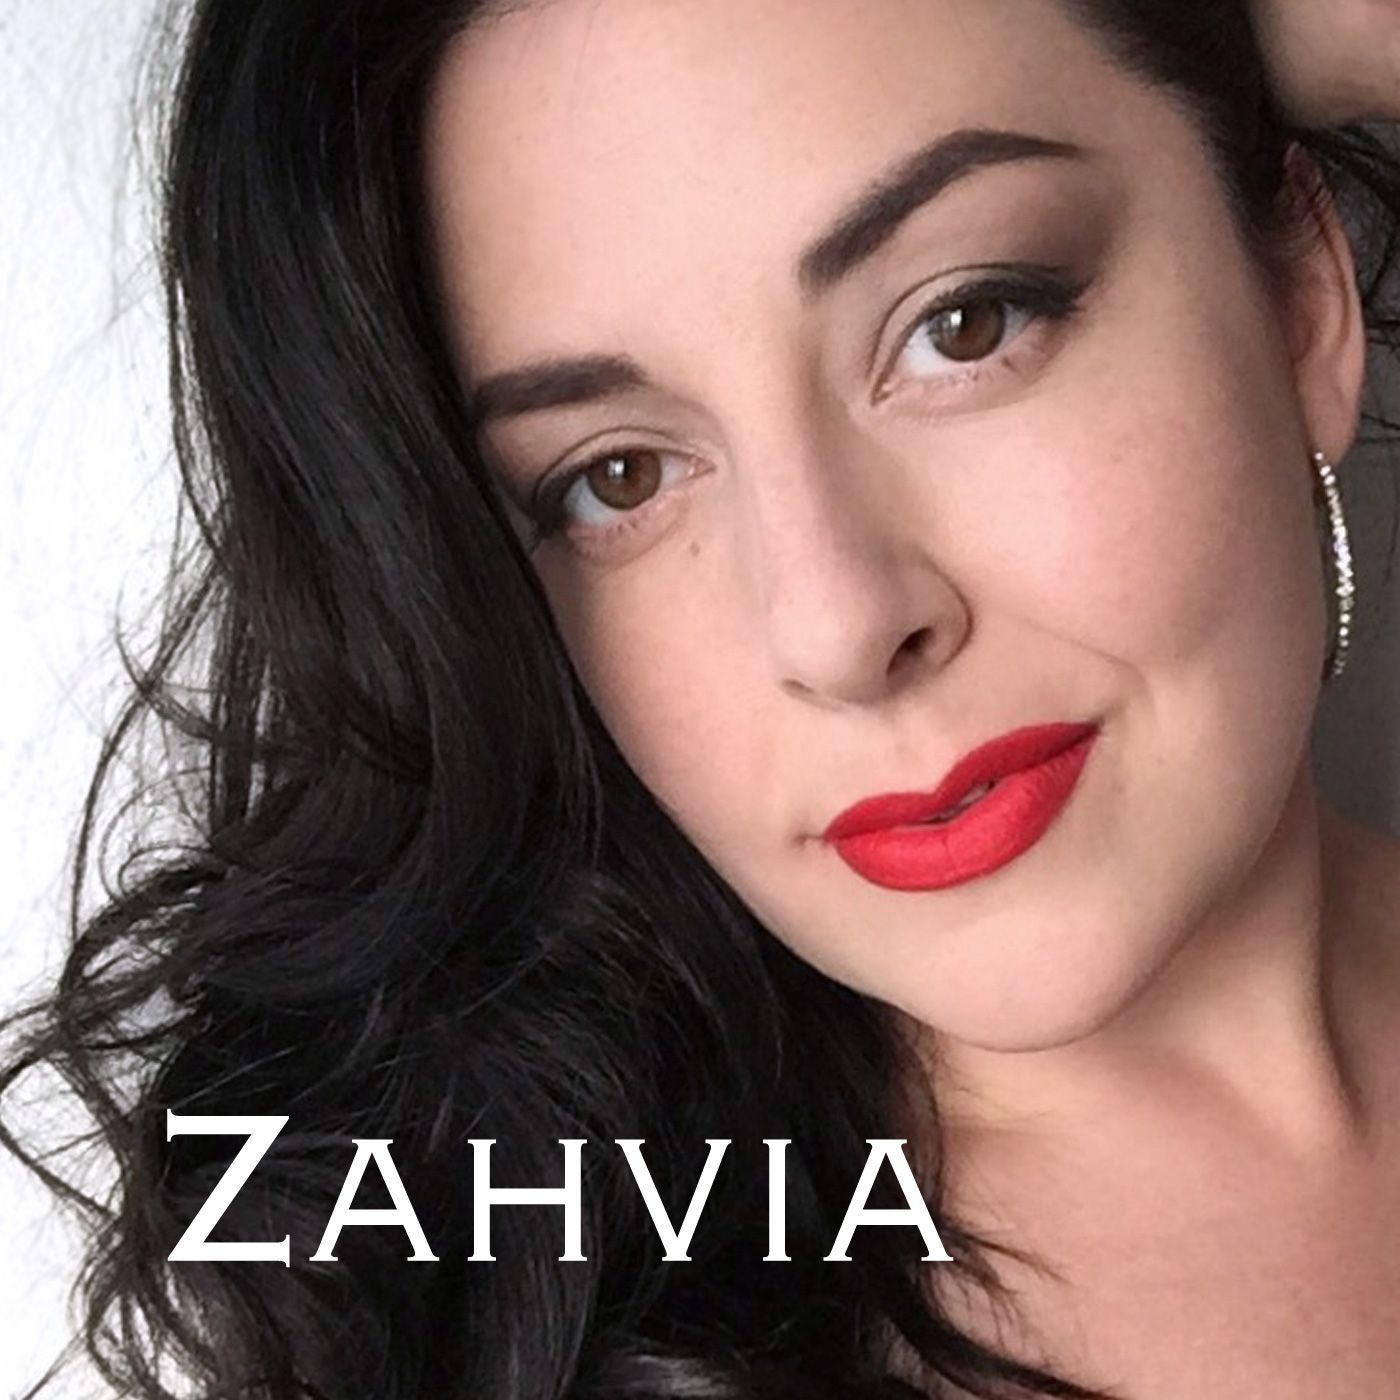 Zahvia: BDSM, Fetish and Sexuality